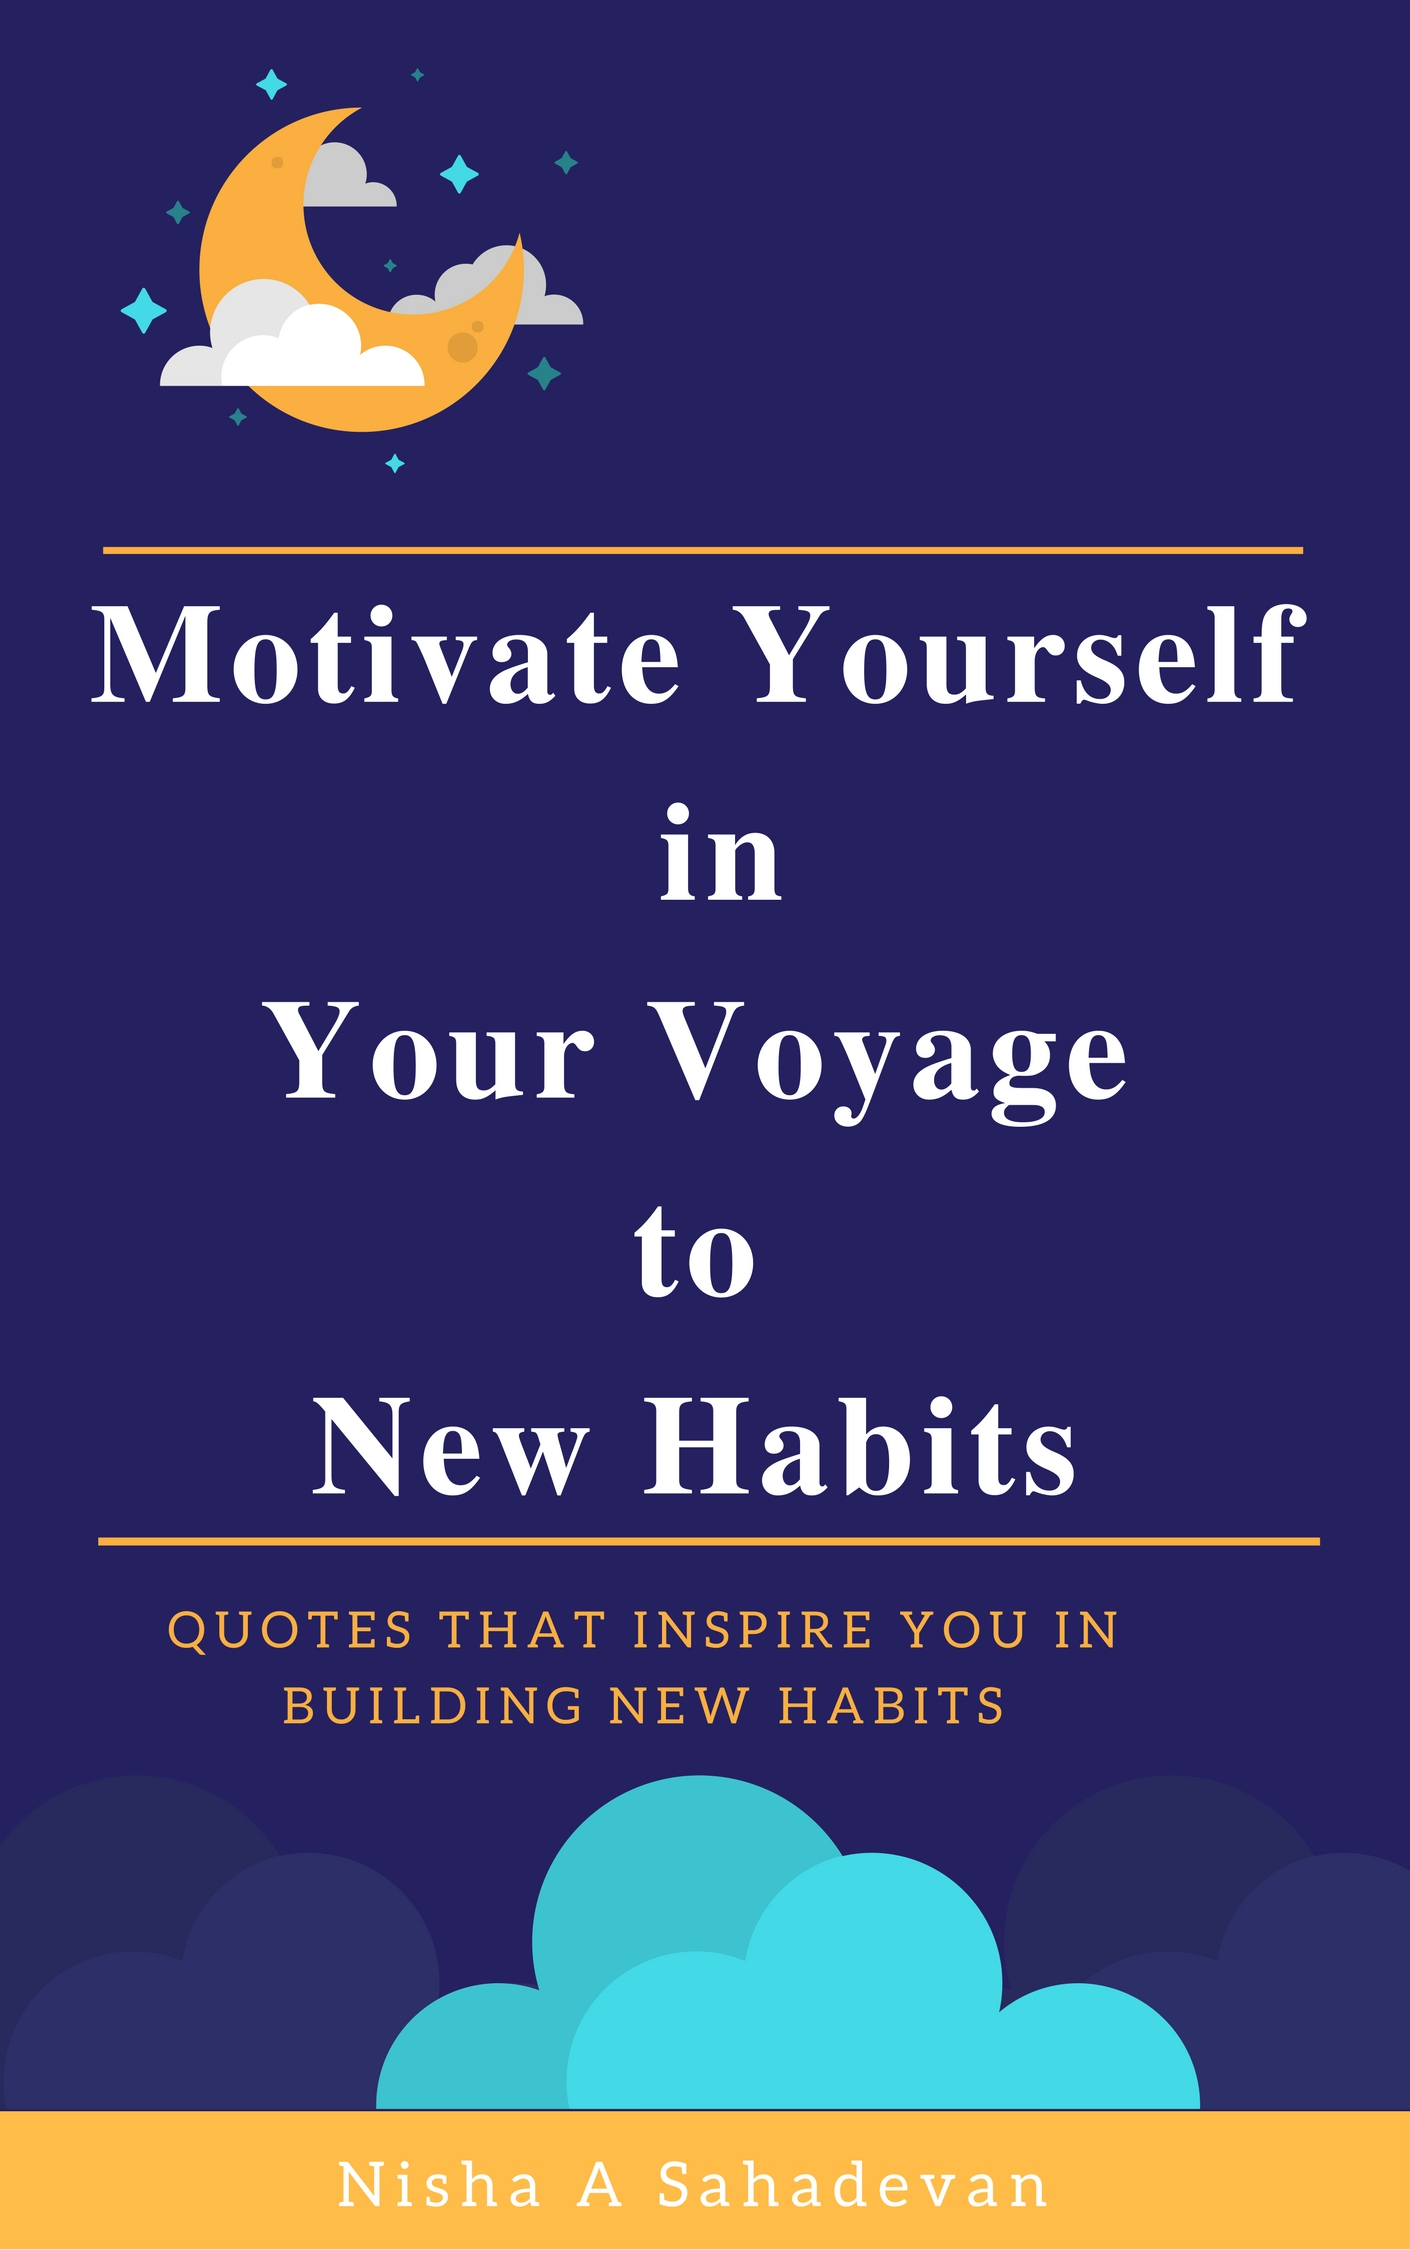 Motivate Yourself in your Voyage towards New Habits